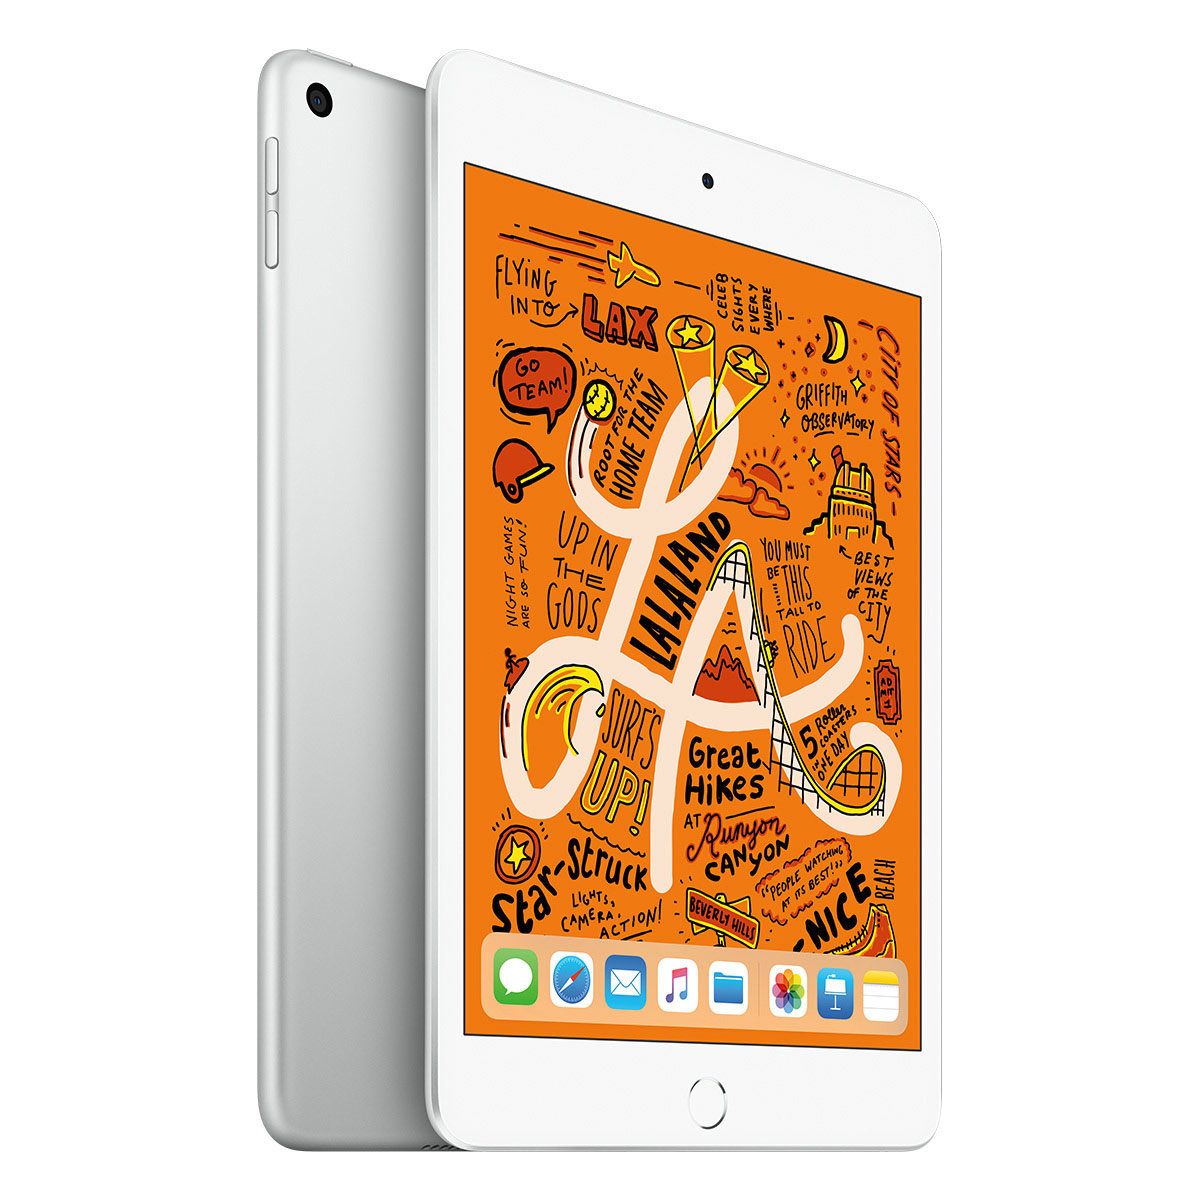 Education Apple iPad mini 256GB WiFi - Silver